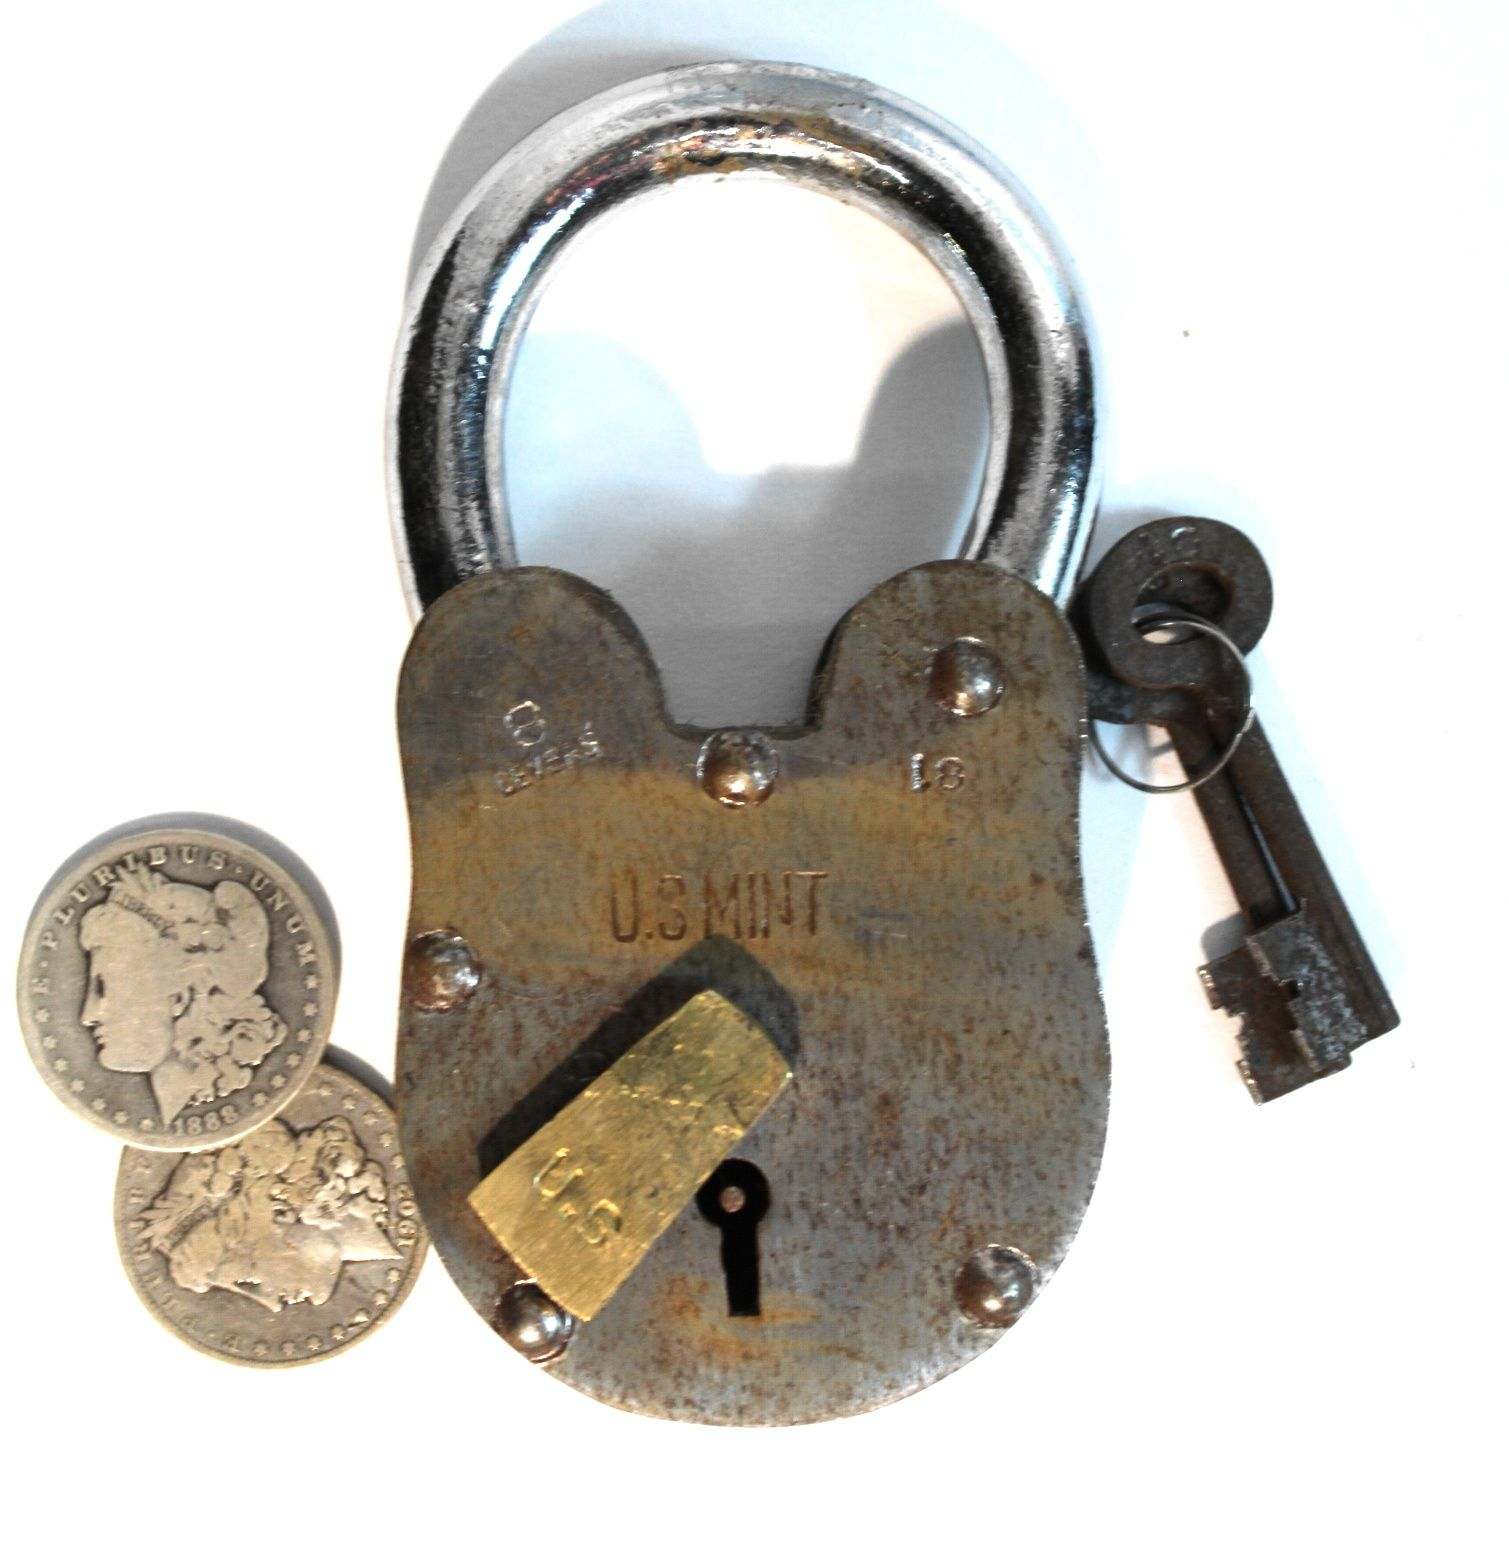 United States Mint Padlock U S American Iron Brass With Key Hole 2 Lb 6 Inches T Brass United States Mint Rare Antique